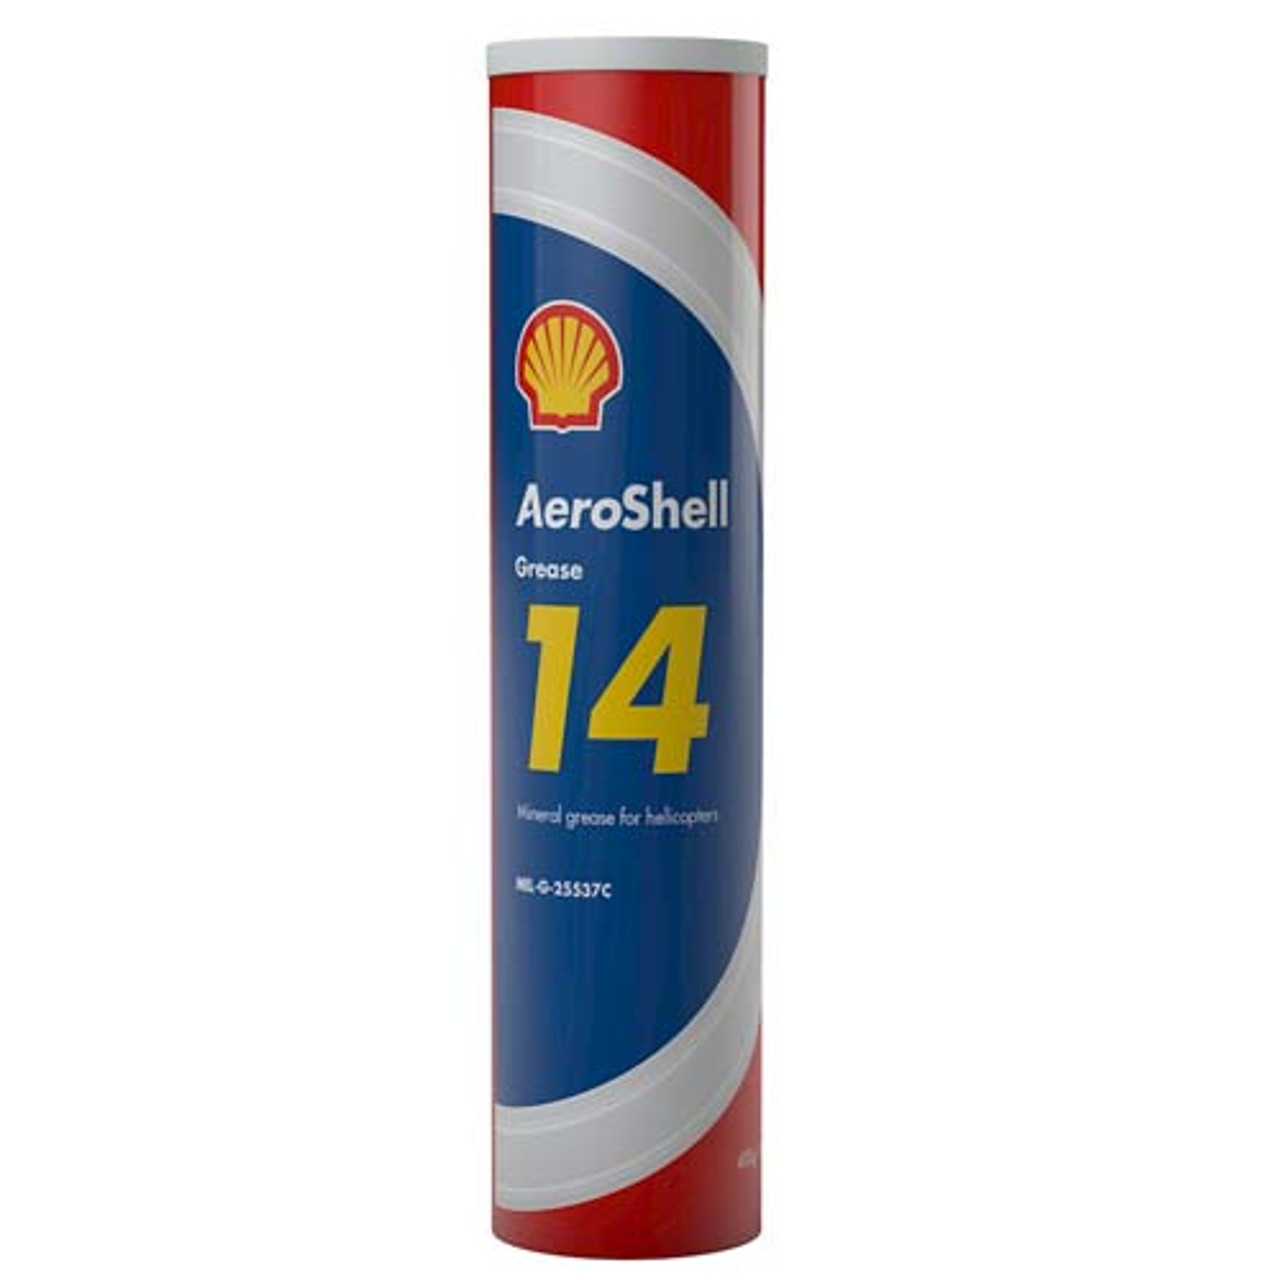 Aeroshell Grease 14 - Multipurpose Helicopter Grease - 14oz